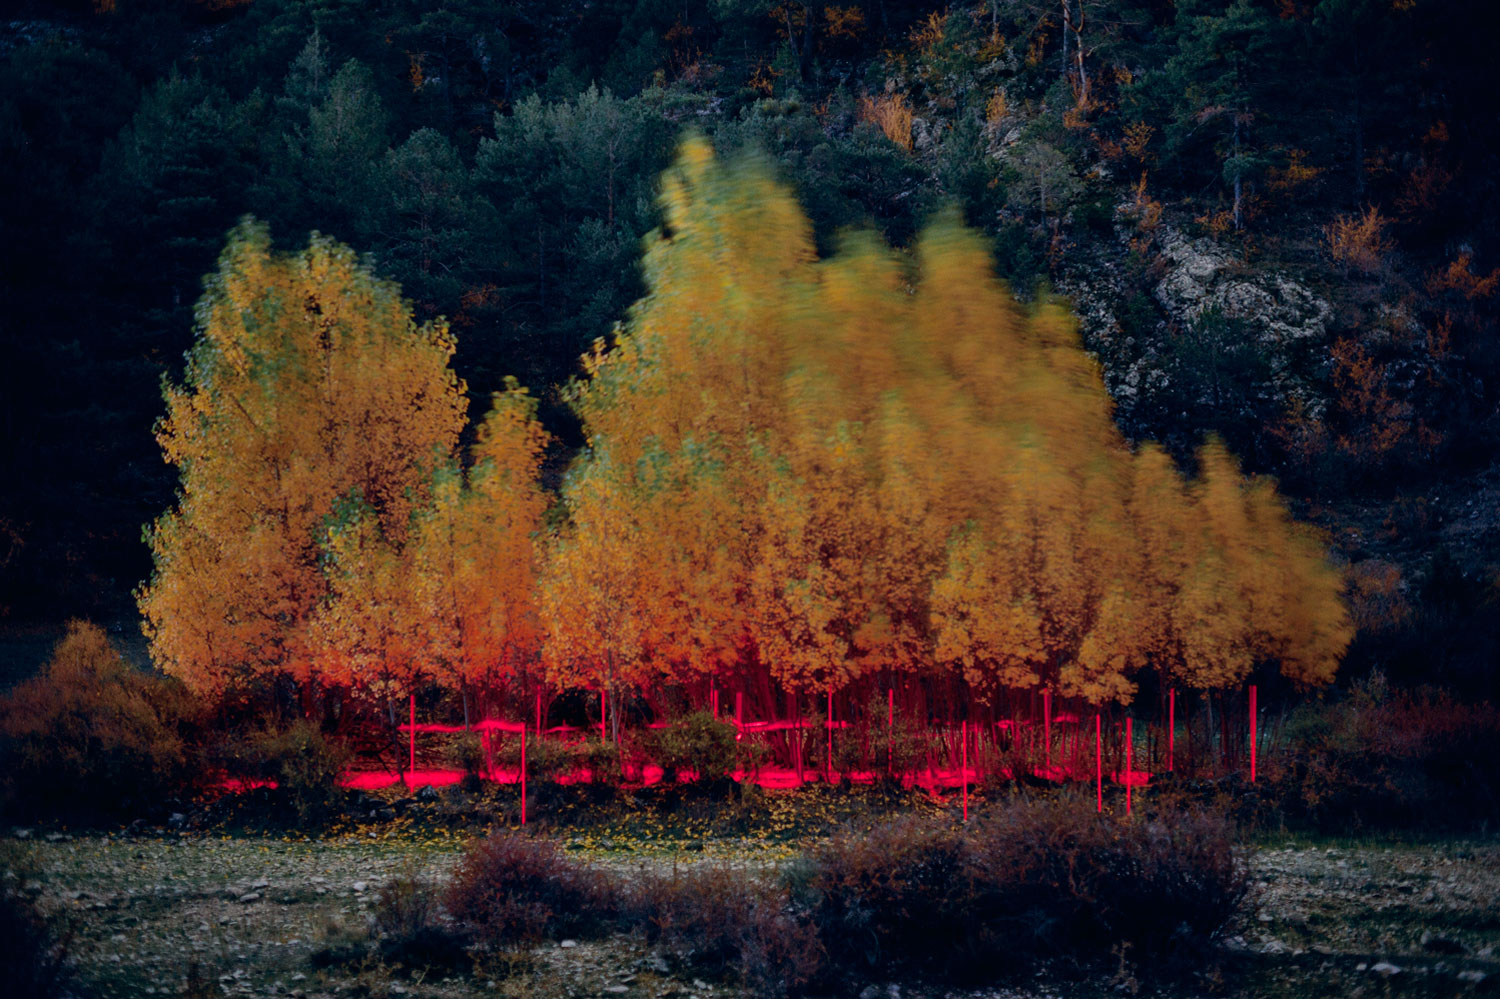 Captivating Light Installations in Nature by Nicolas Rivals | Yellowtrace